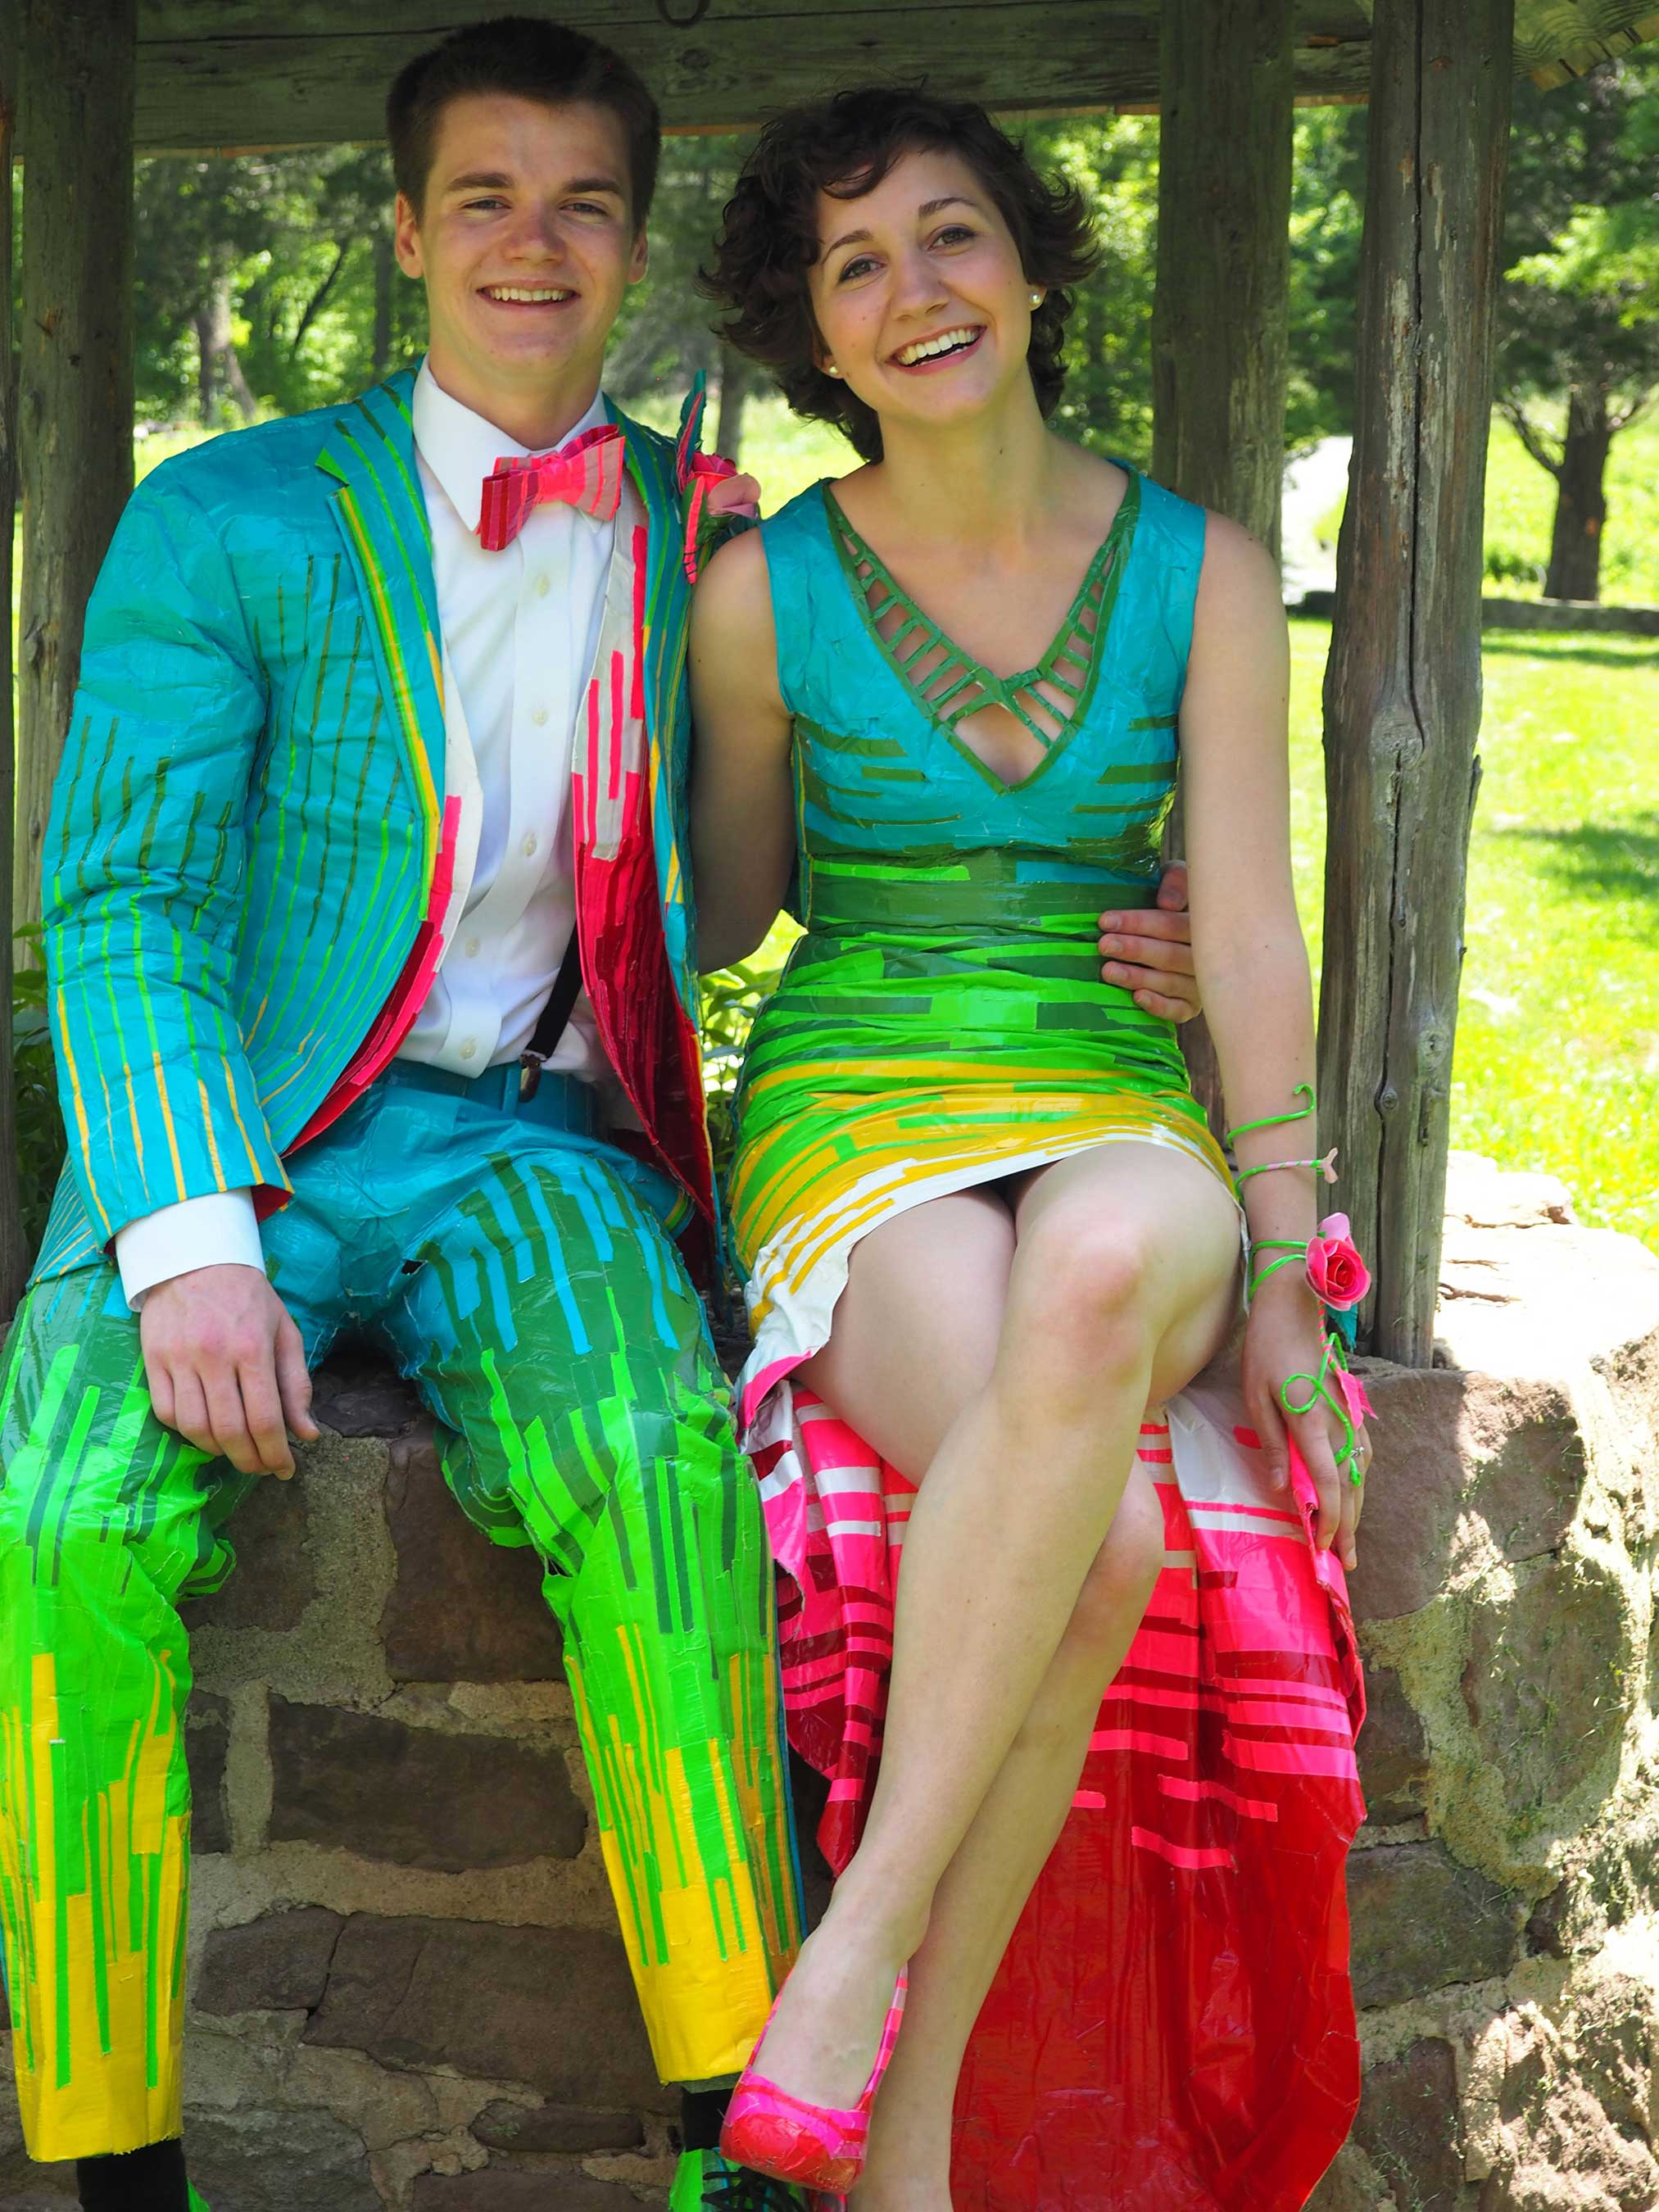 High Tuxedos Duct Tape Prom Dress Winners 2014 2015 Duck Brand Stuck At Prom Scholarship Contest Prize Miaand Chandler Scholarship Winners Revealed Annual Brand Stuck At Duct Tape Prom Dresses wedding dress Duct Tape Prom Dress